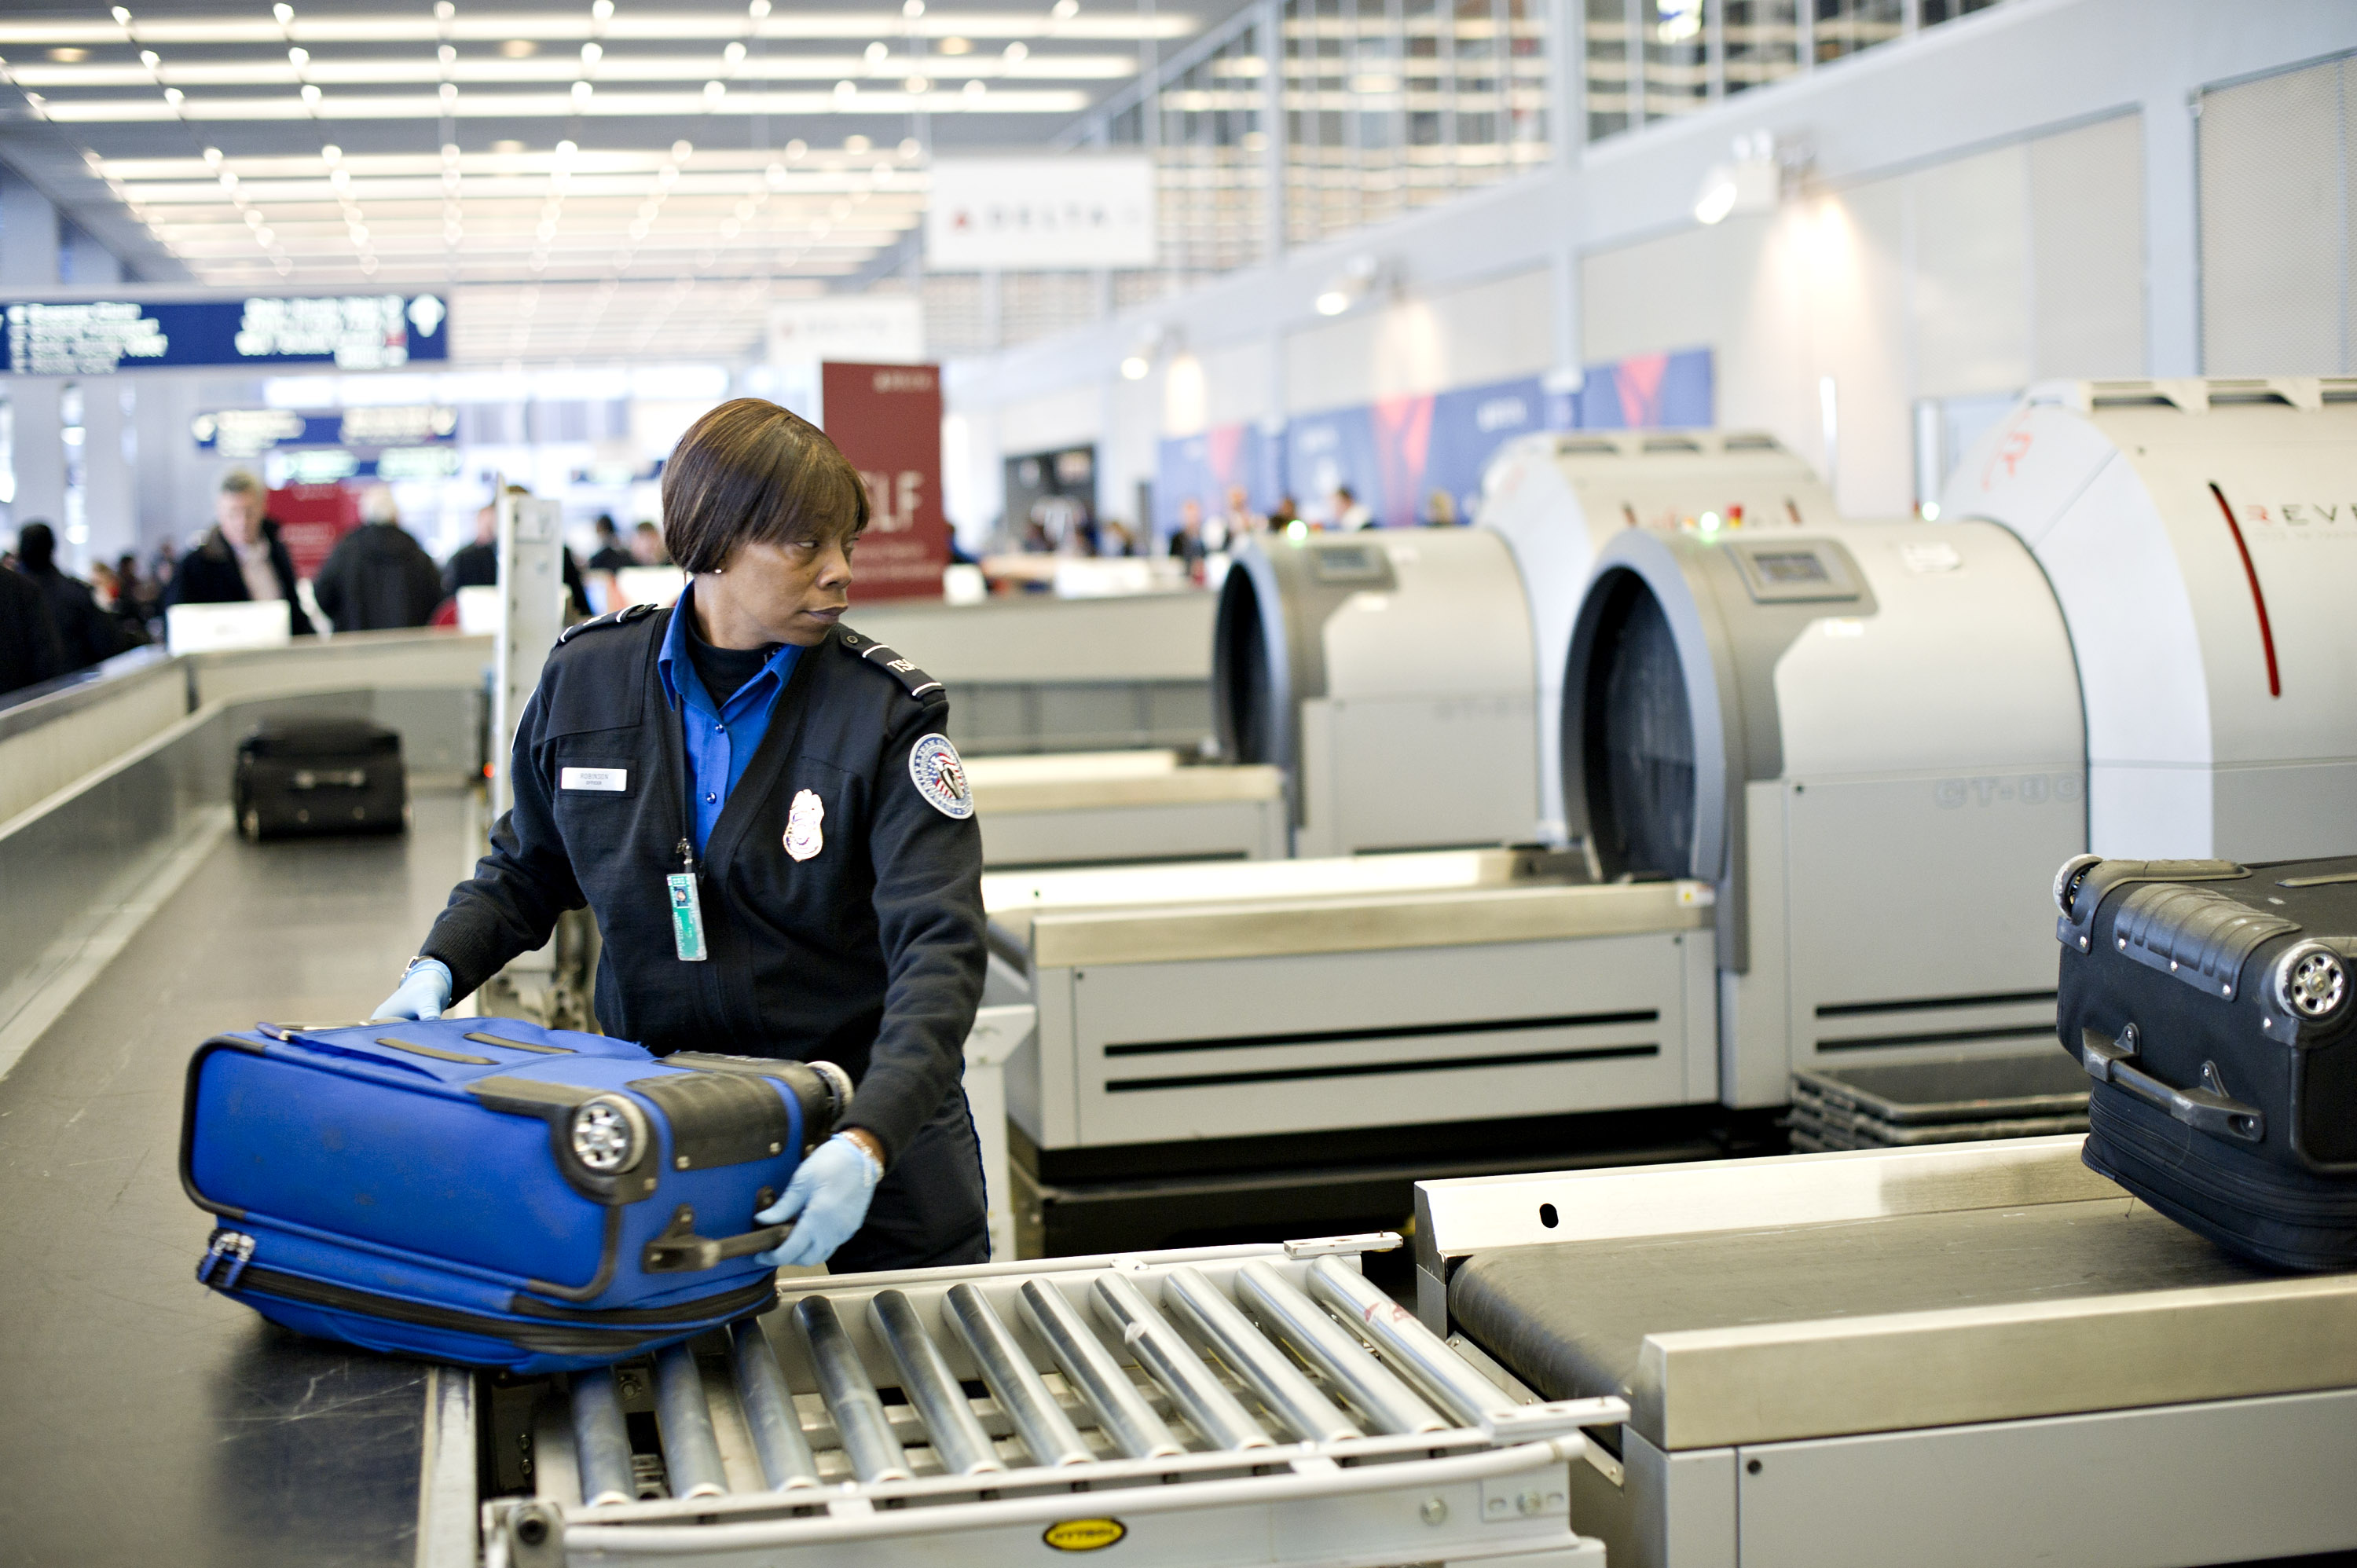 A Transportation Security Administration employee moves a checked piece of passenger luggage toward a scanning machine at a security check point at O'Hare International Airport in Chicago, Illinois.